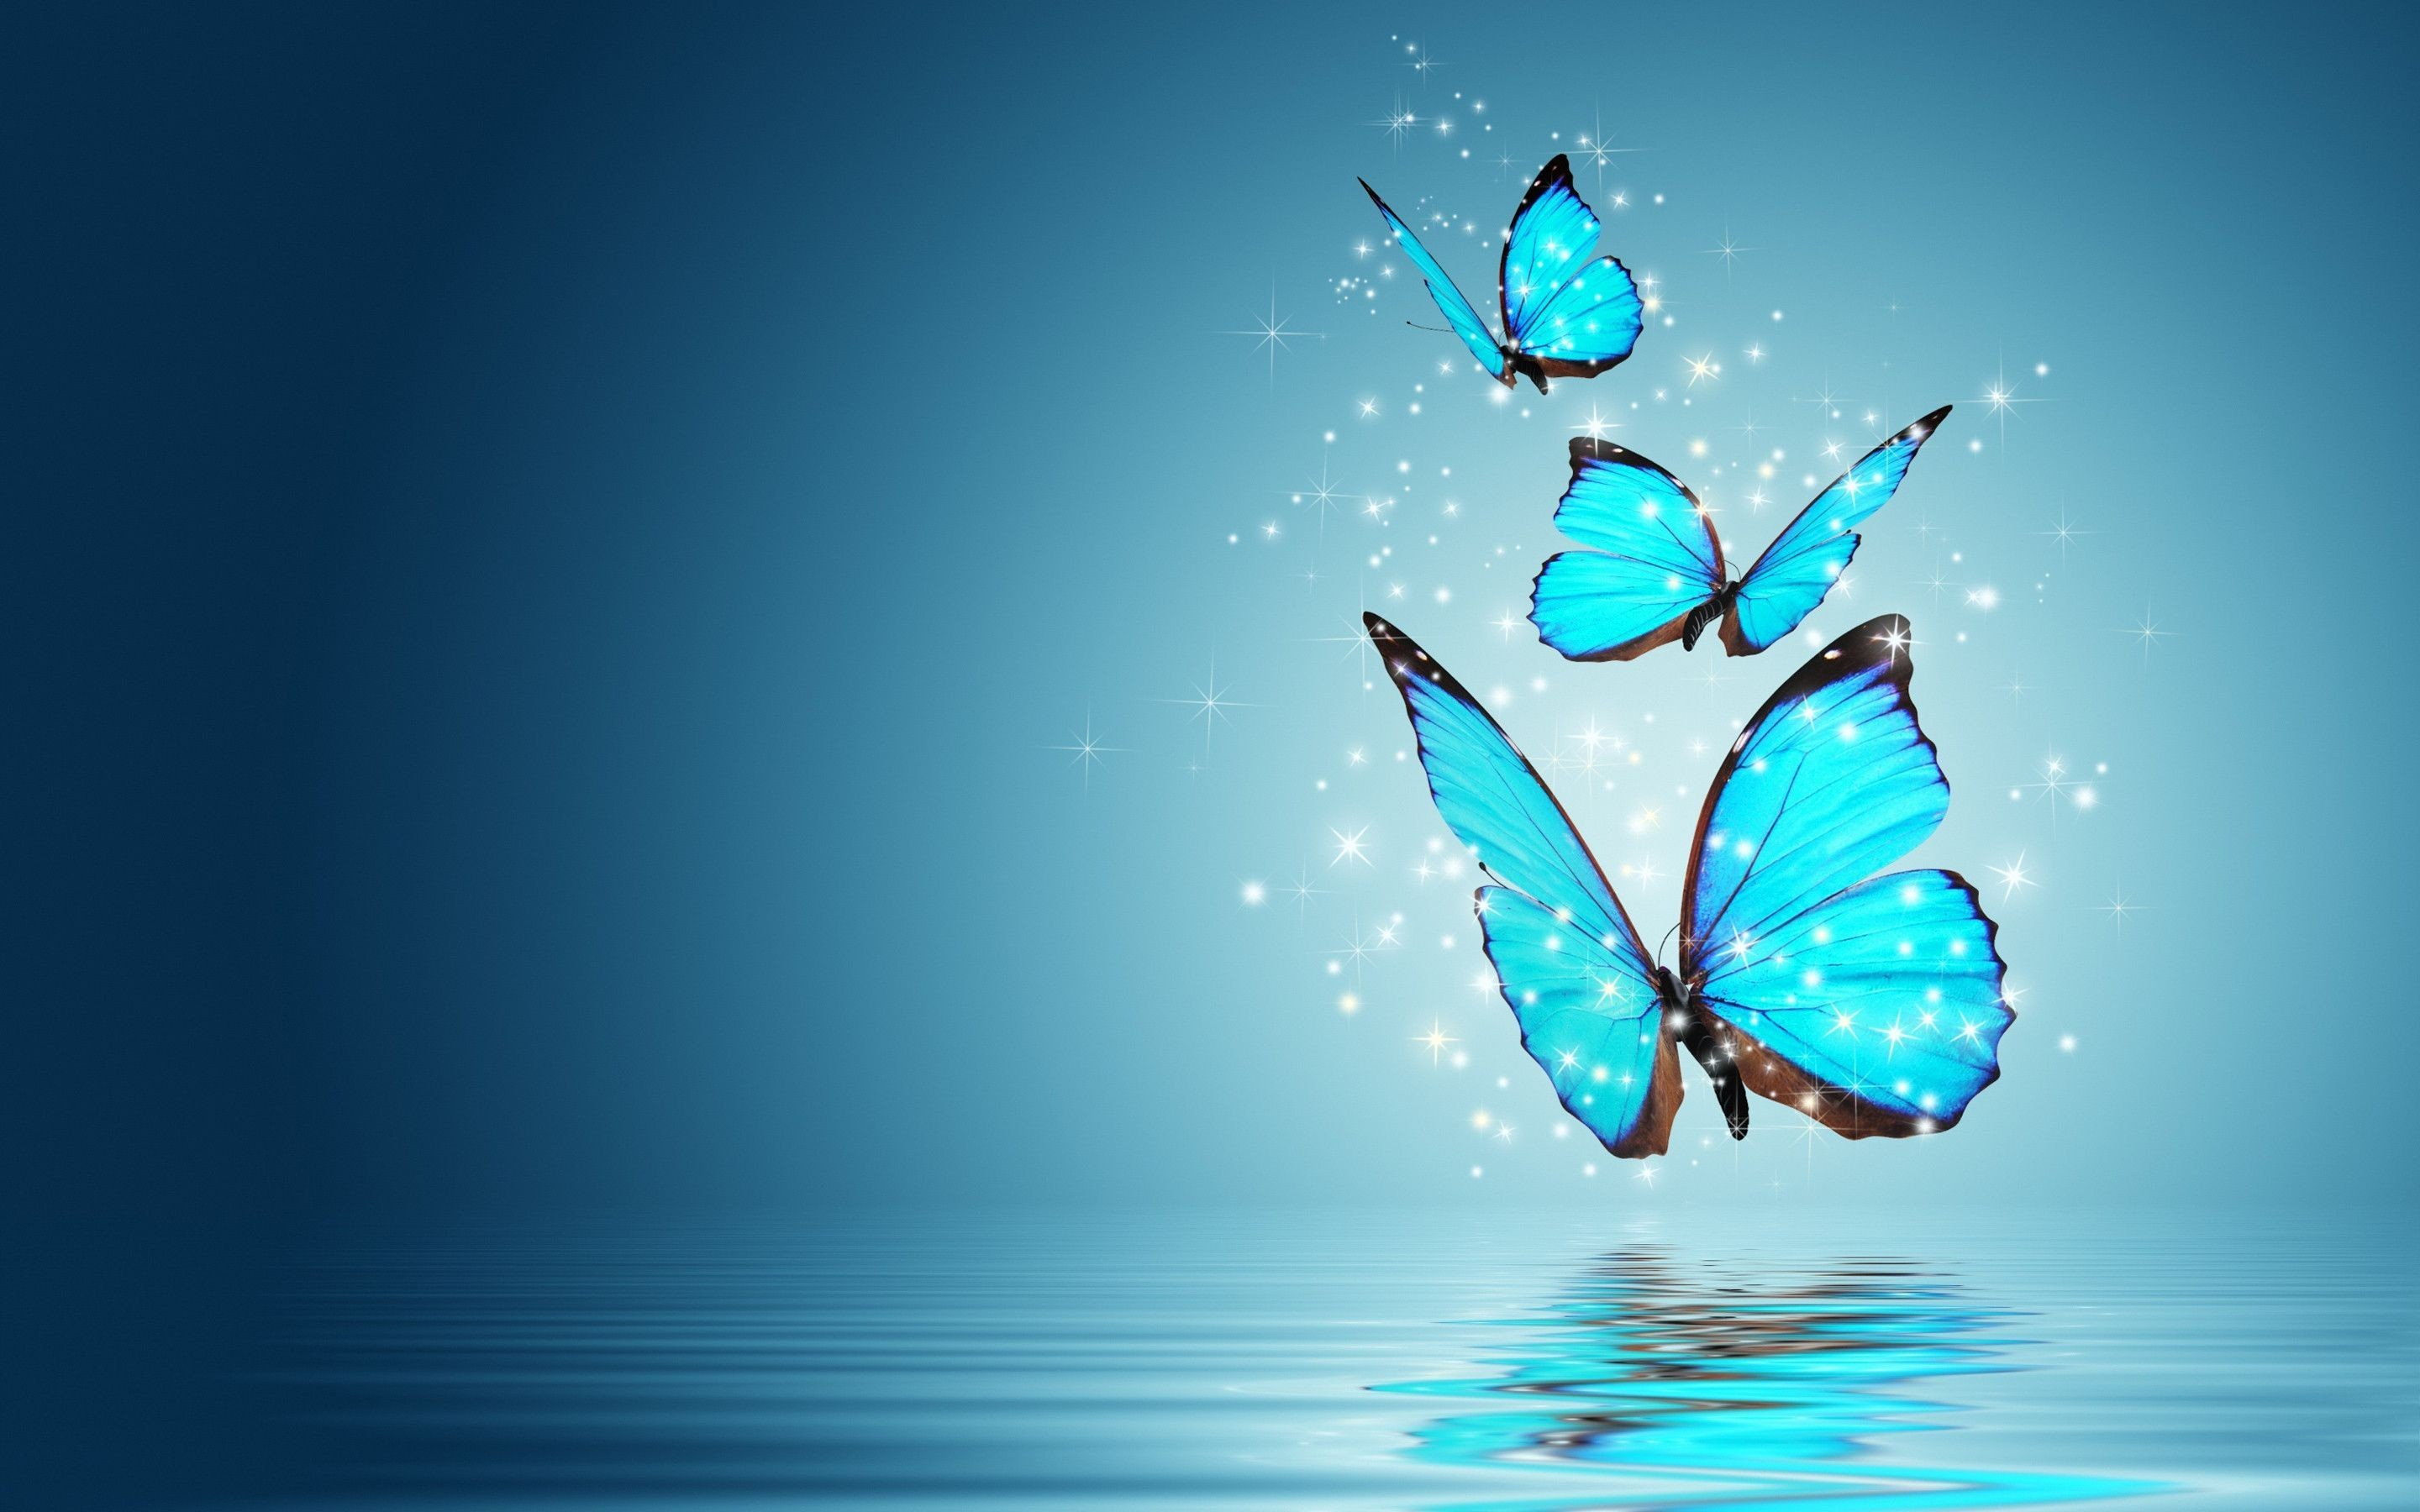 Blue Butterfly HD Wallpaper 70 images 2880x1800